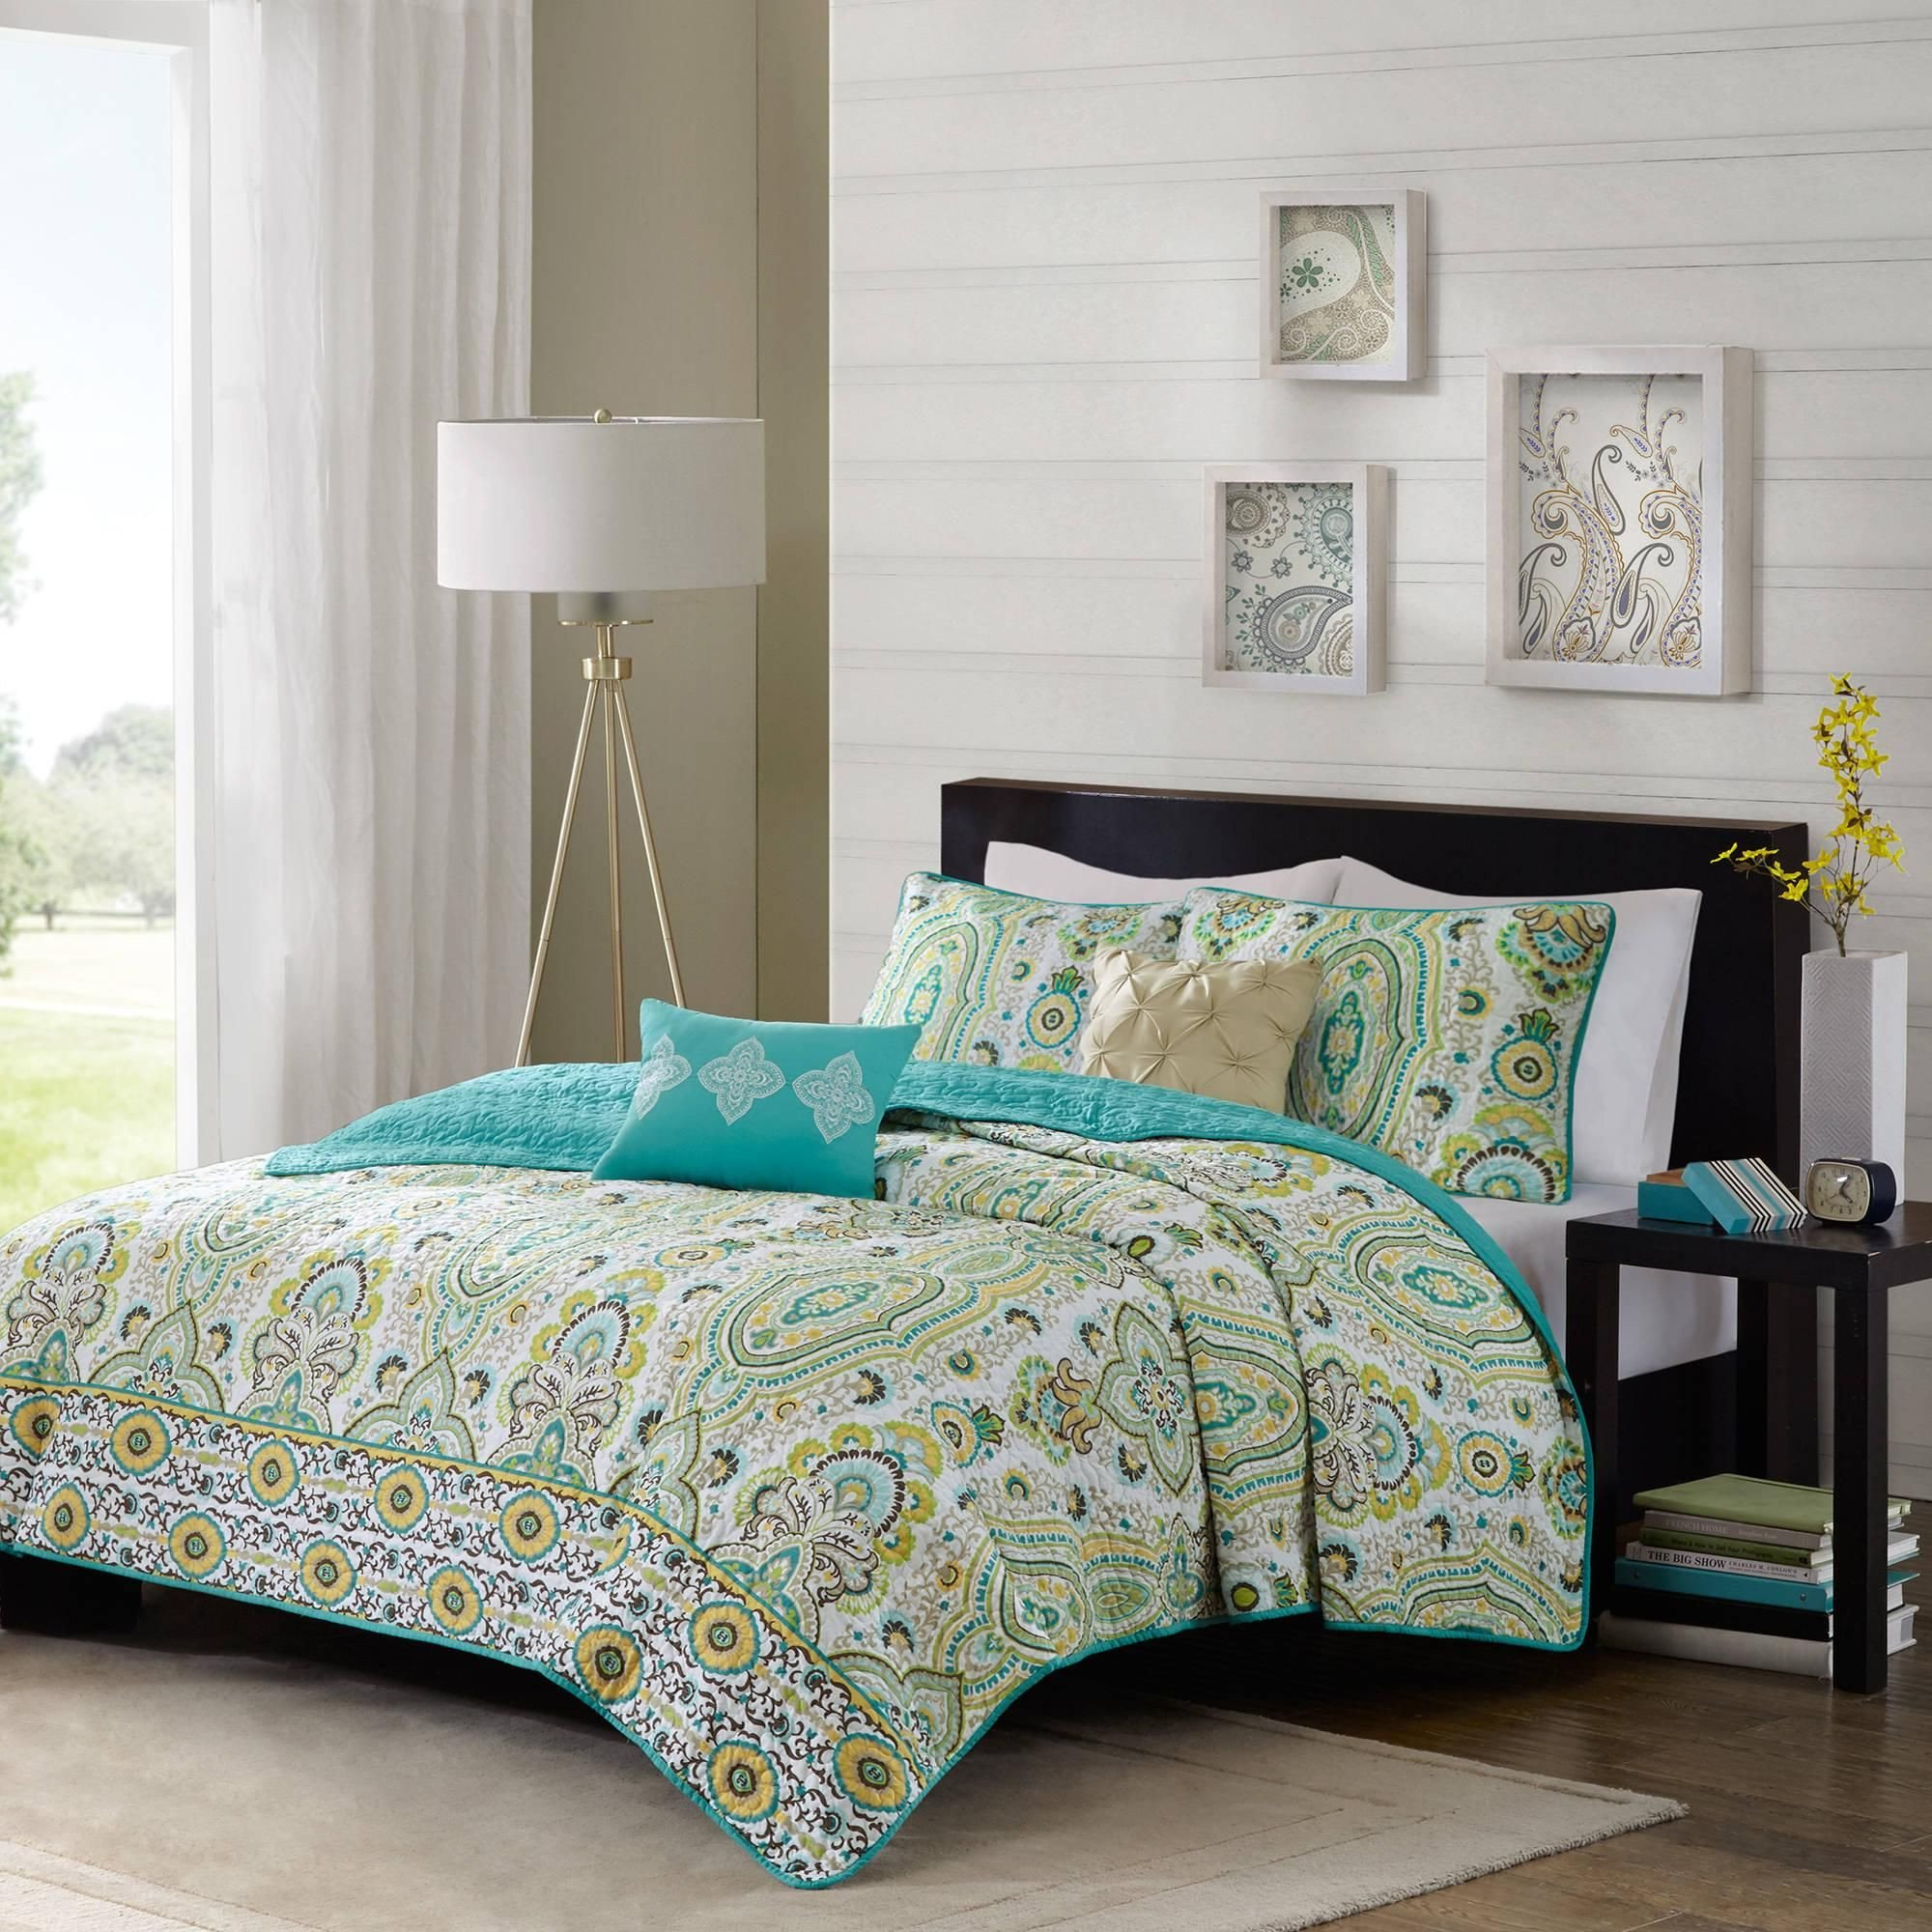 Walmart Bedroom Set Queen Inspirational Home Essence Apartment Heather Coverlet Set